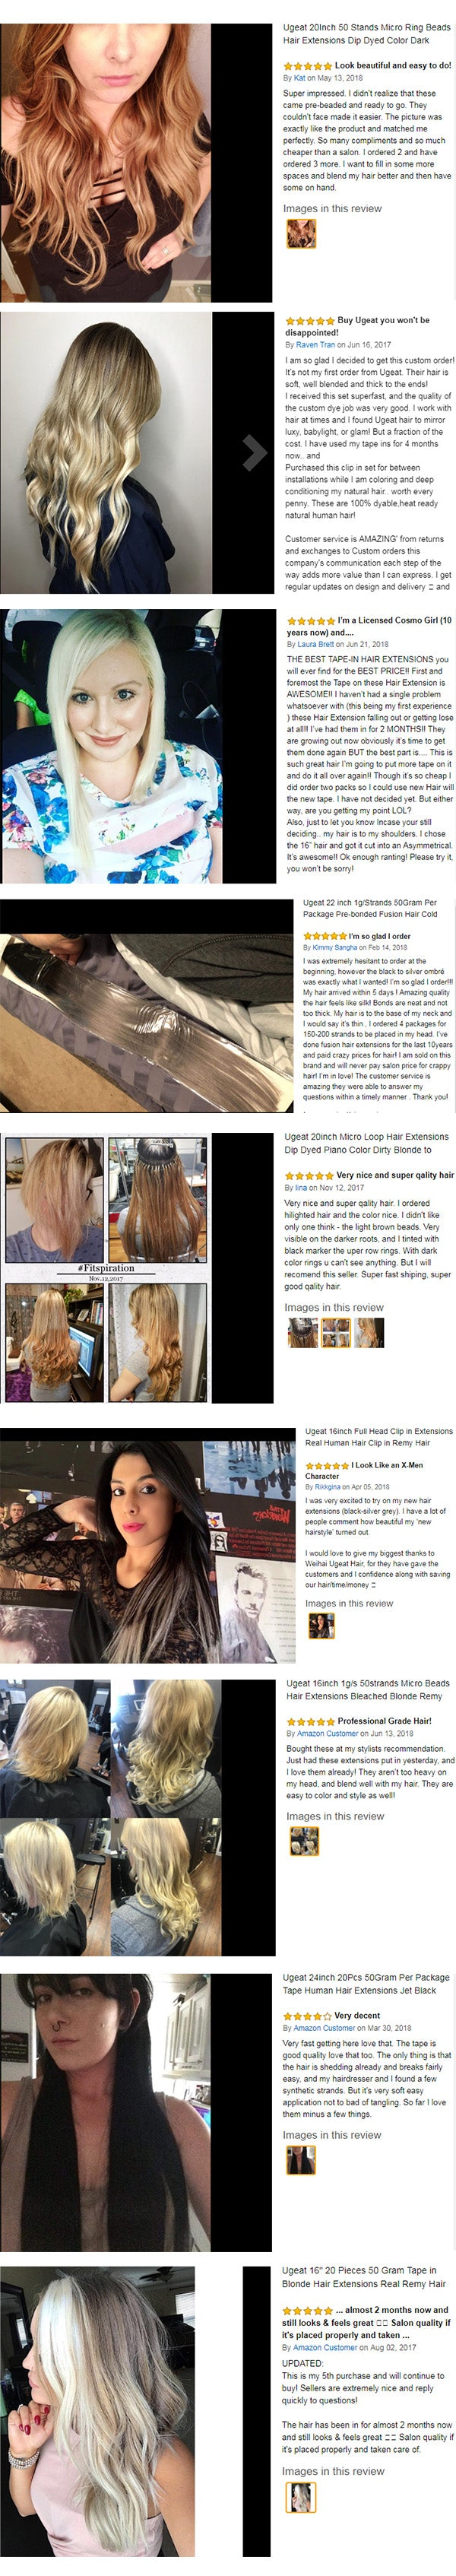 Customer's Reviews of Ugeat Human Hair Extensions